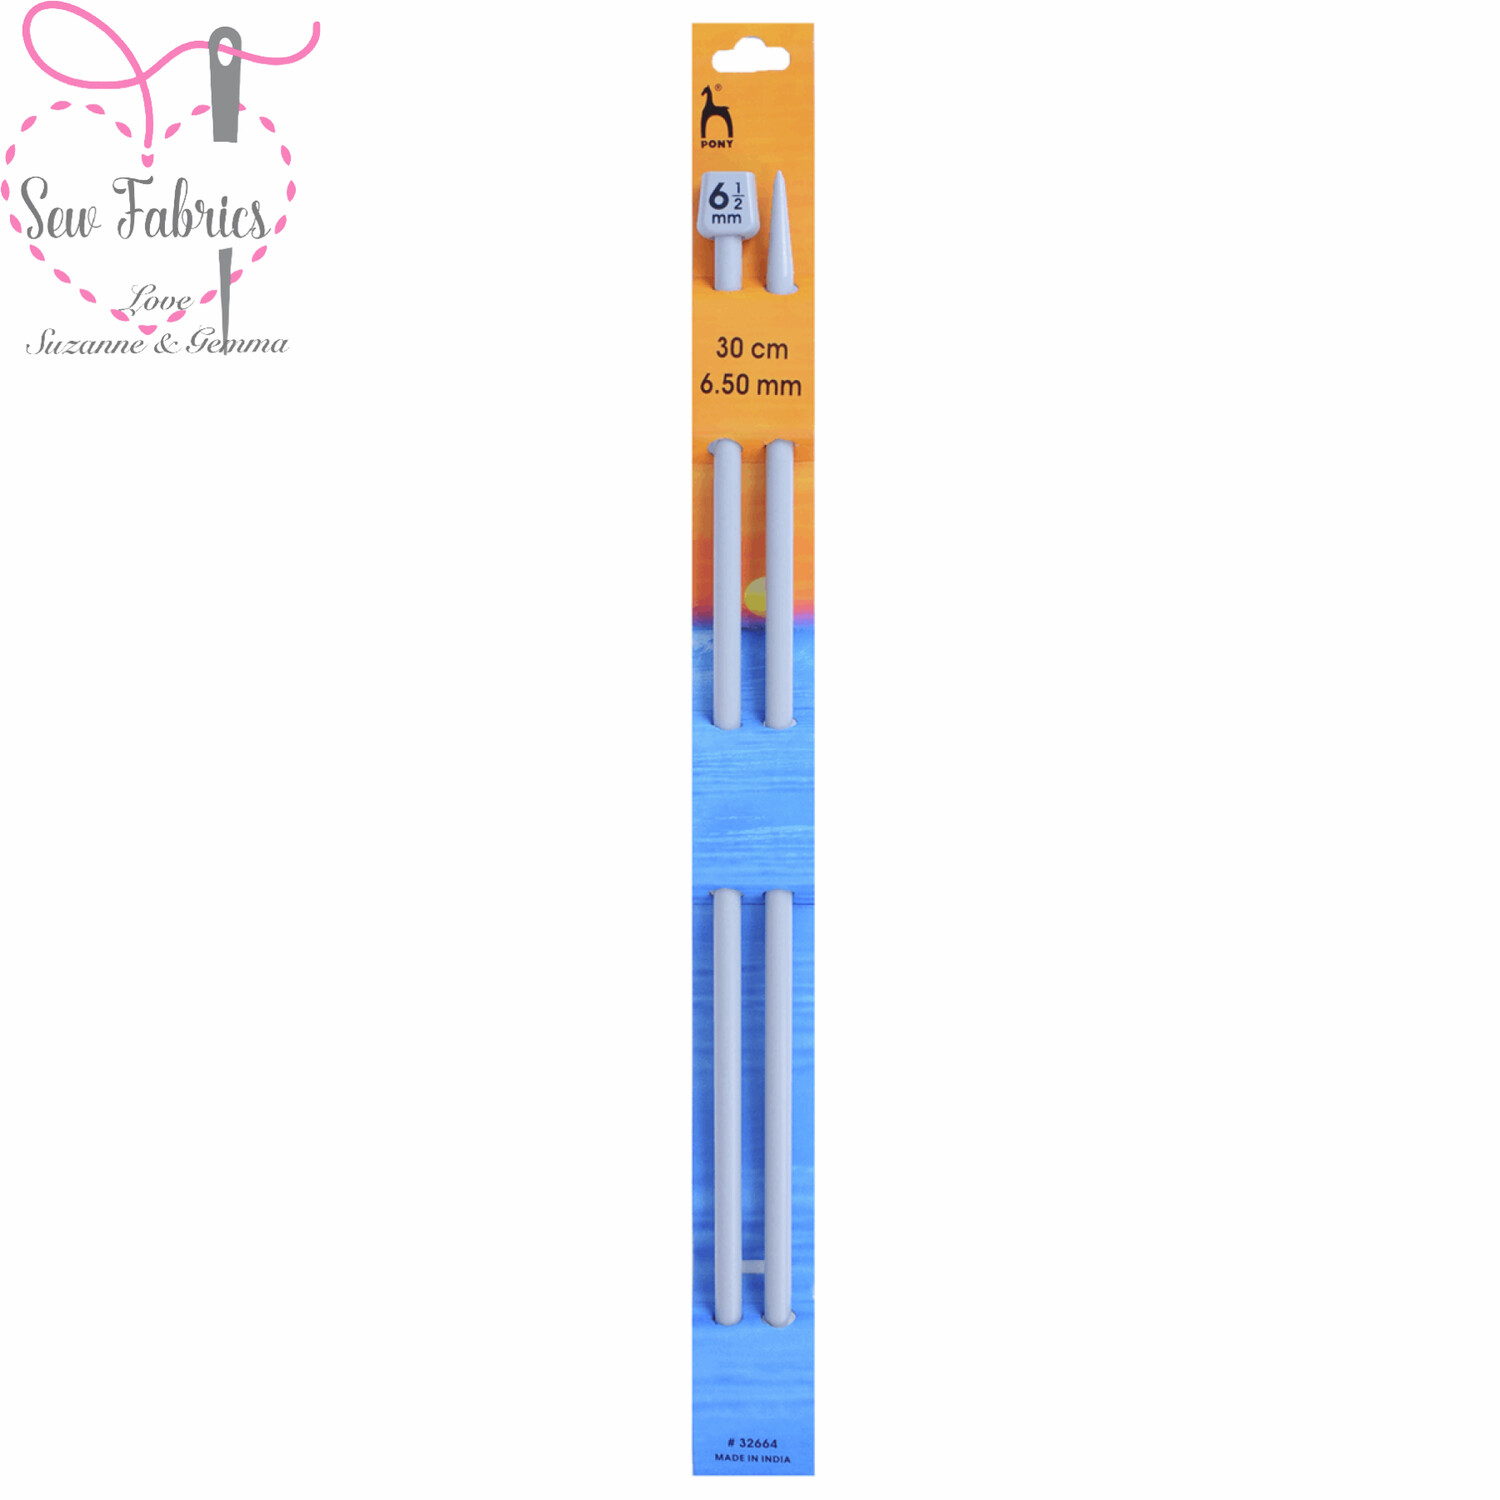 Pony Single Ended 30cm Classic Grey Knitting Needles / Pins in Size 6.5mm. Smooth Light Knitting Needles.